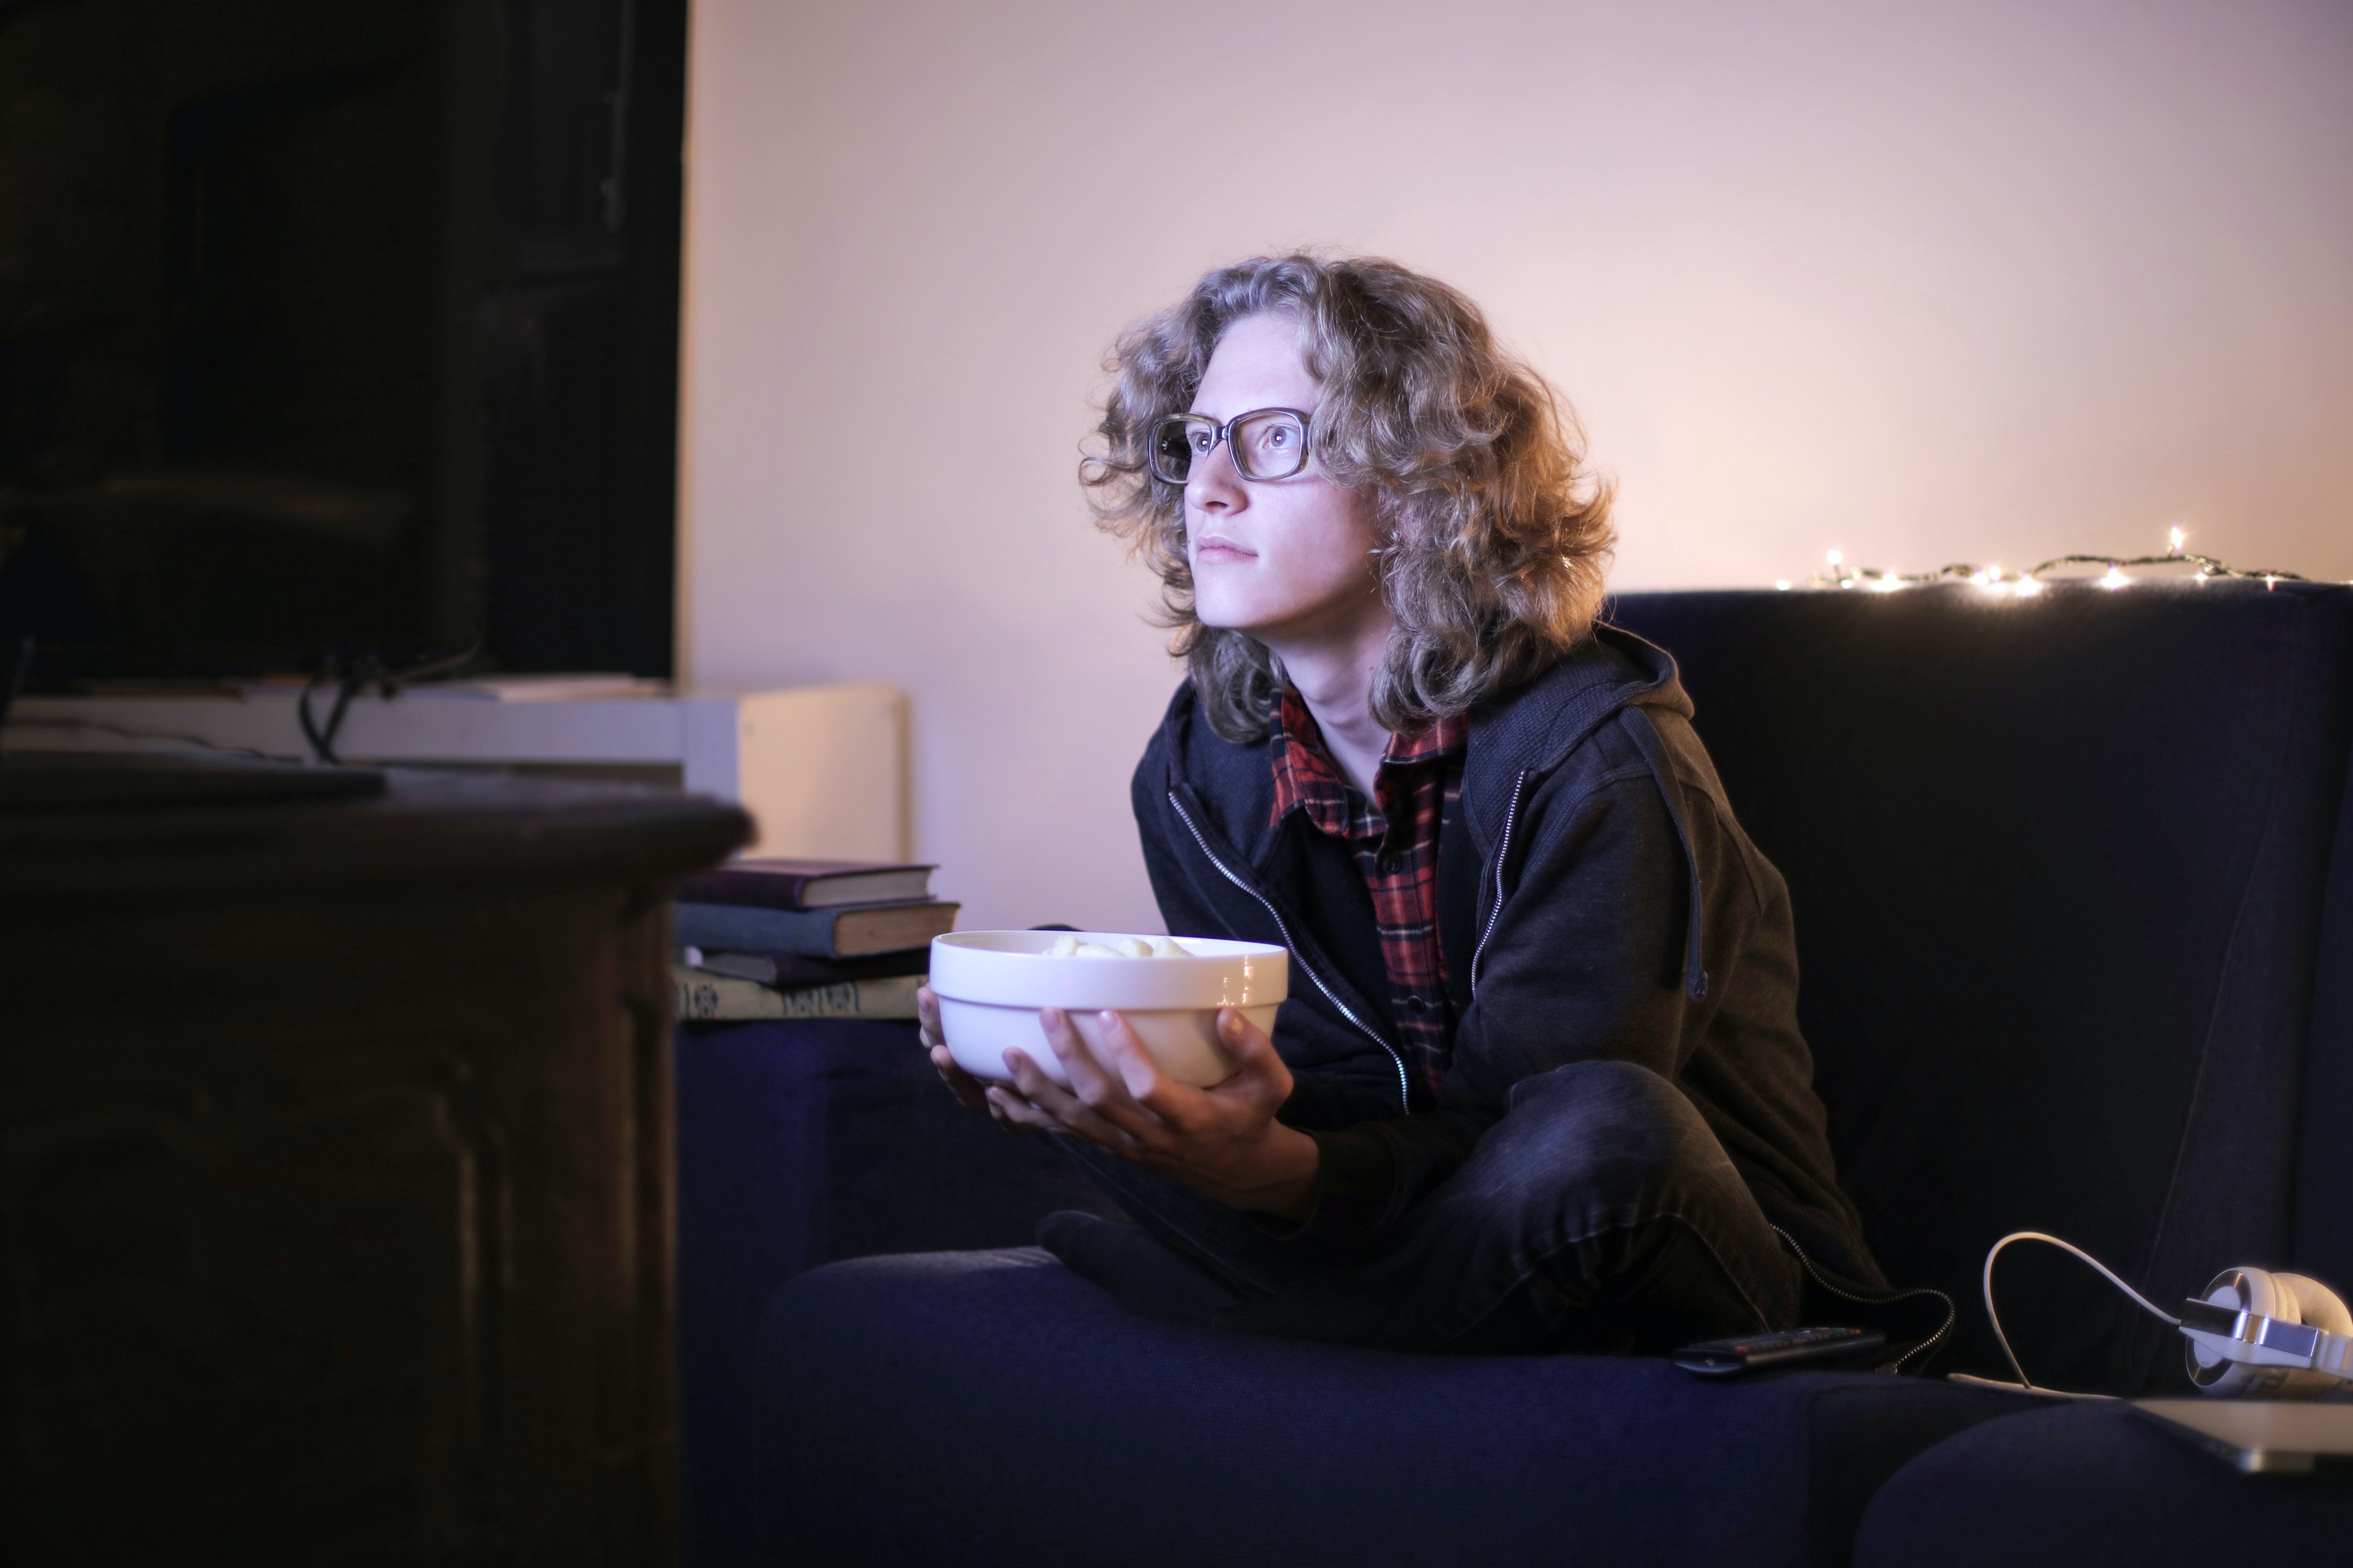 Person with light curly hair holding a popcorn bowl and illuminated by a TV screen they're staring intently into